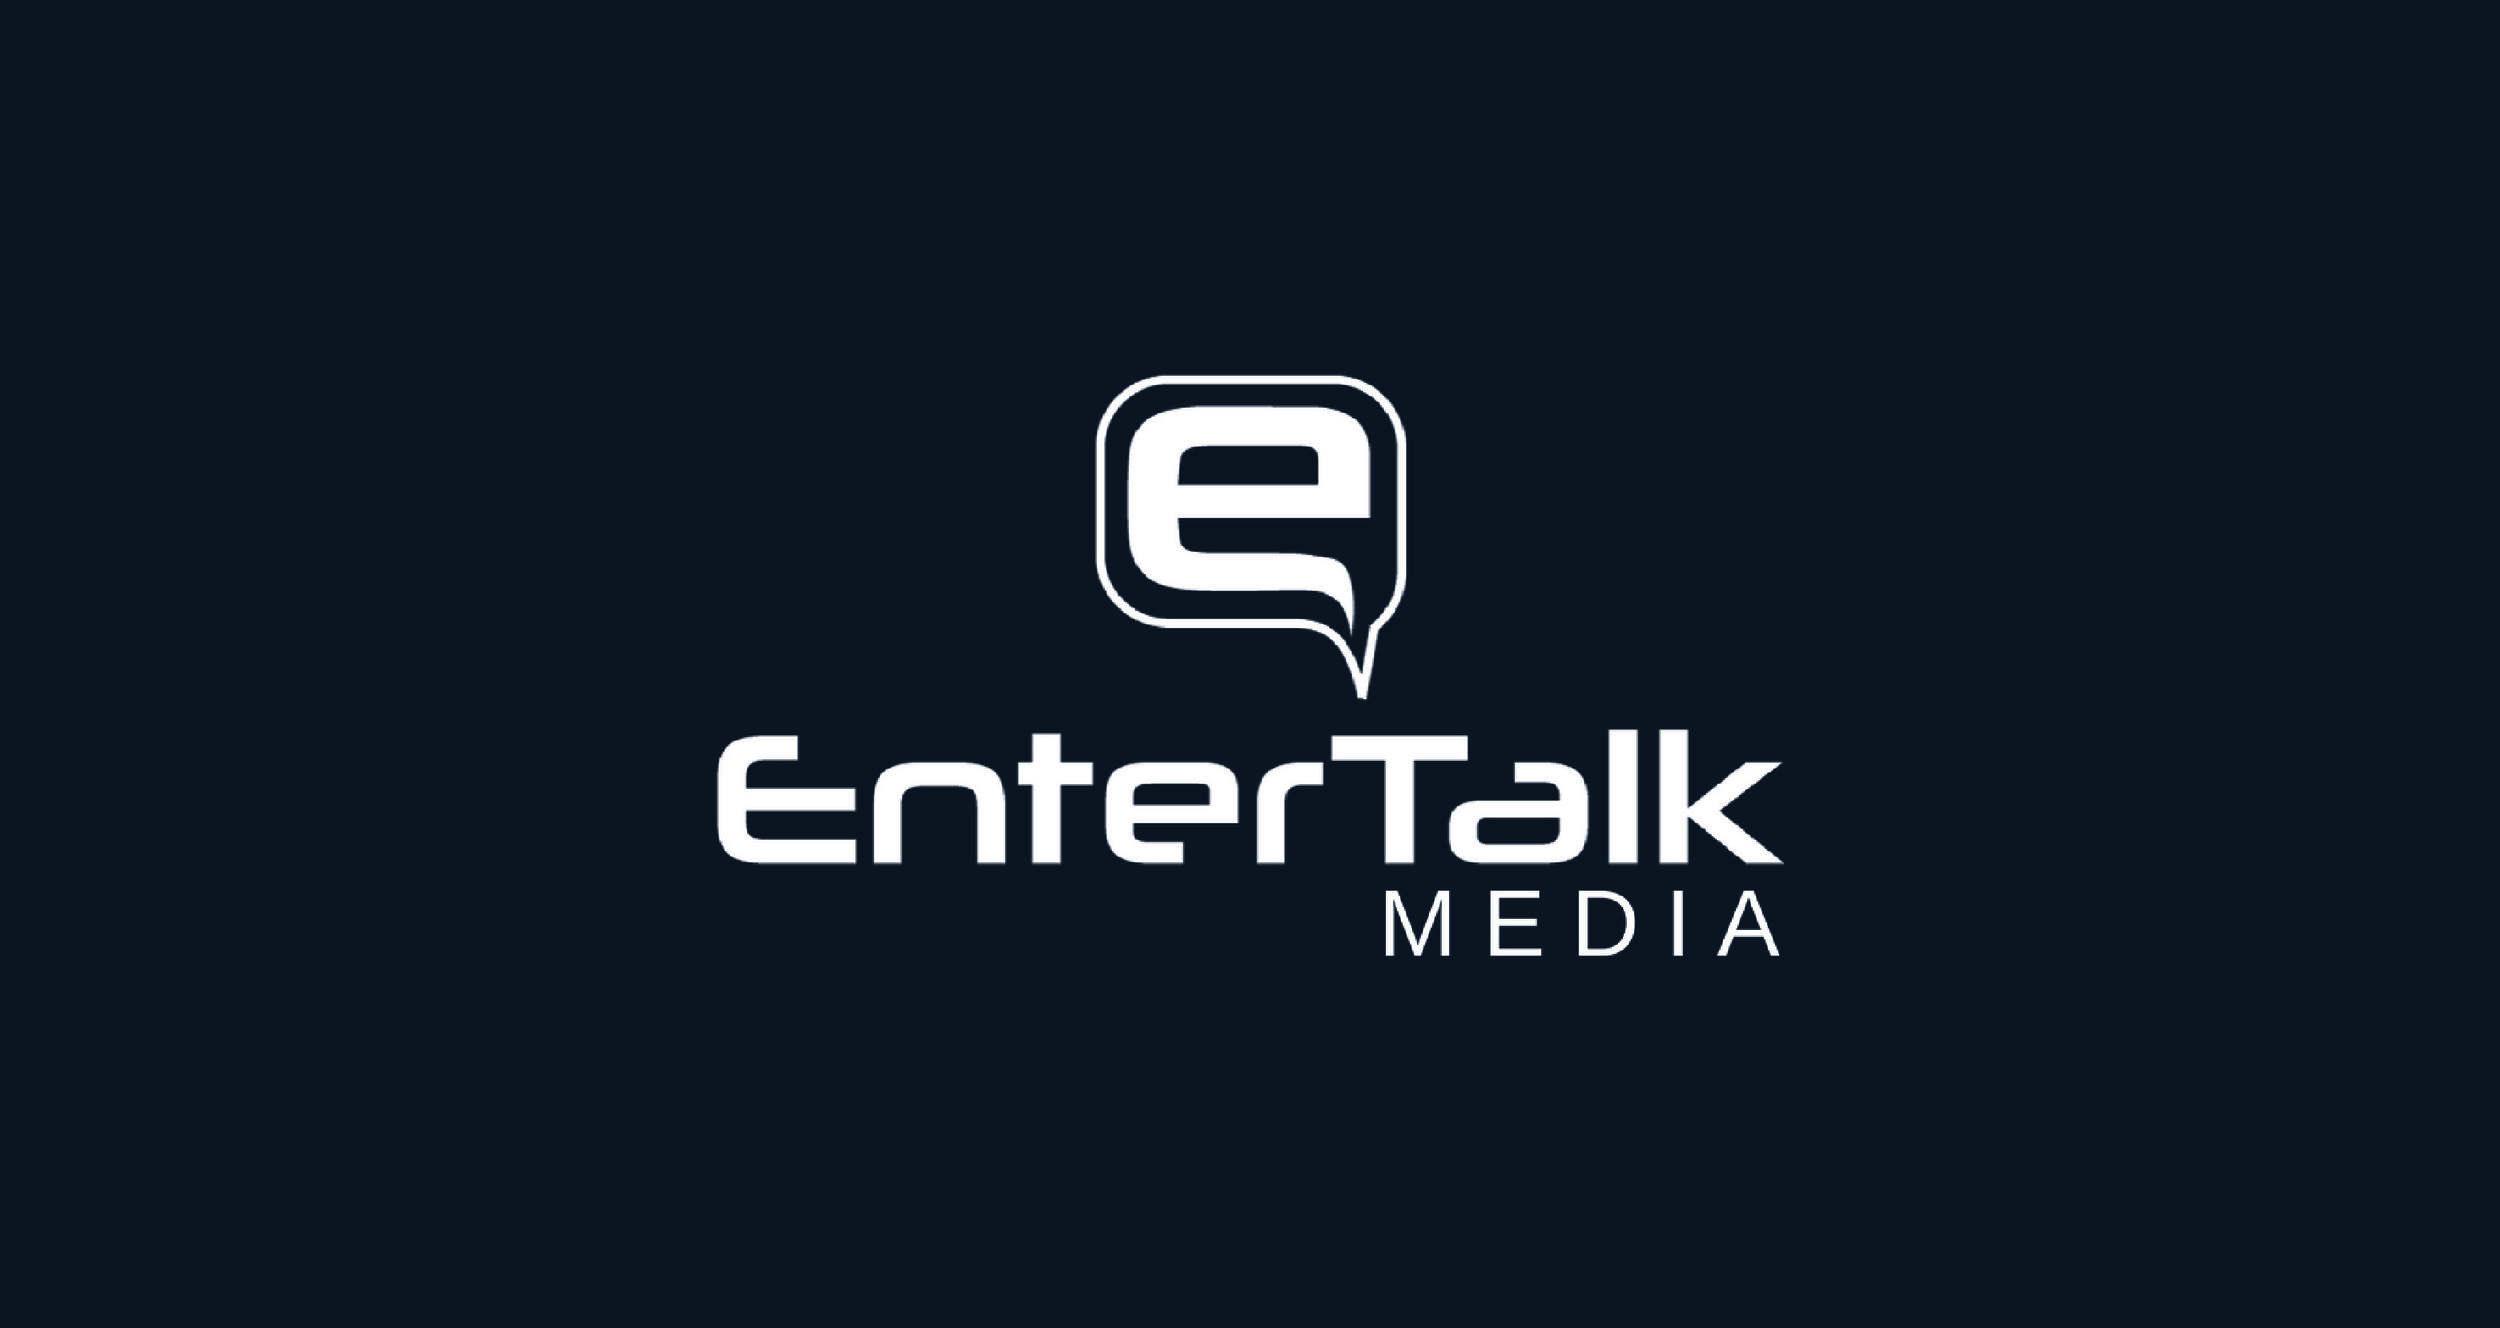 ENTER TALK PARTNERSHIP - We have joined one of the music industry's most iconic networks